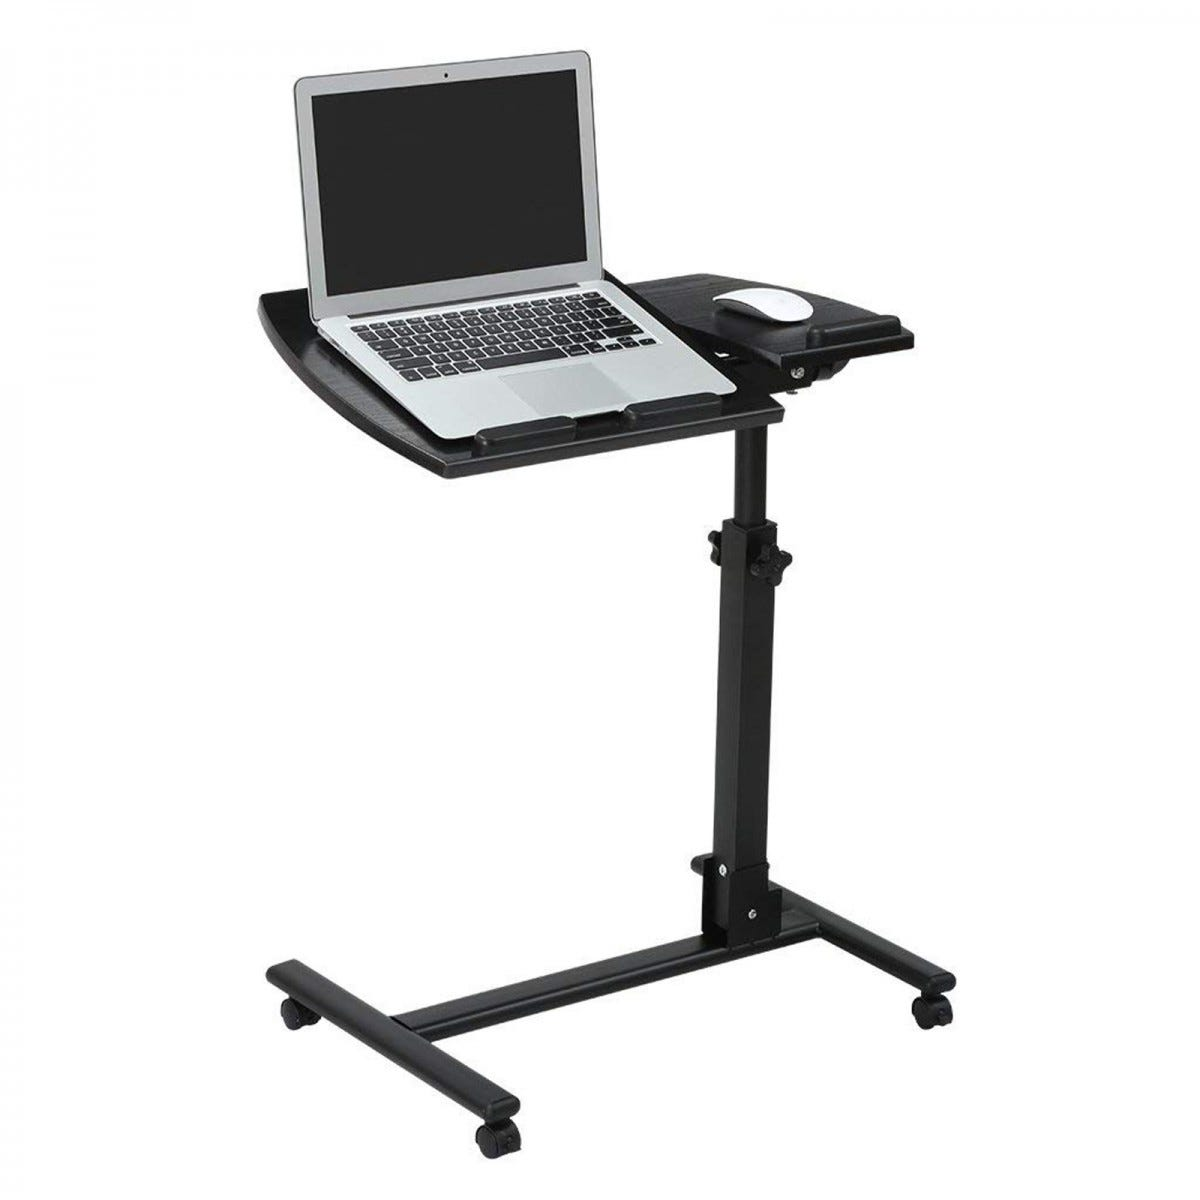 The LANGRIA Laptop Rolling Cart with an open laptop and mouse on it.